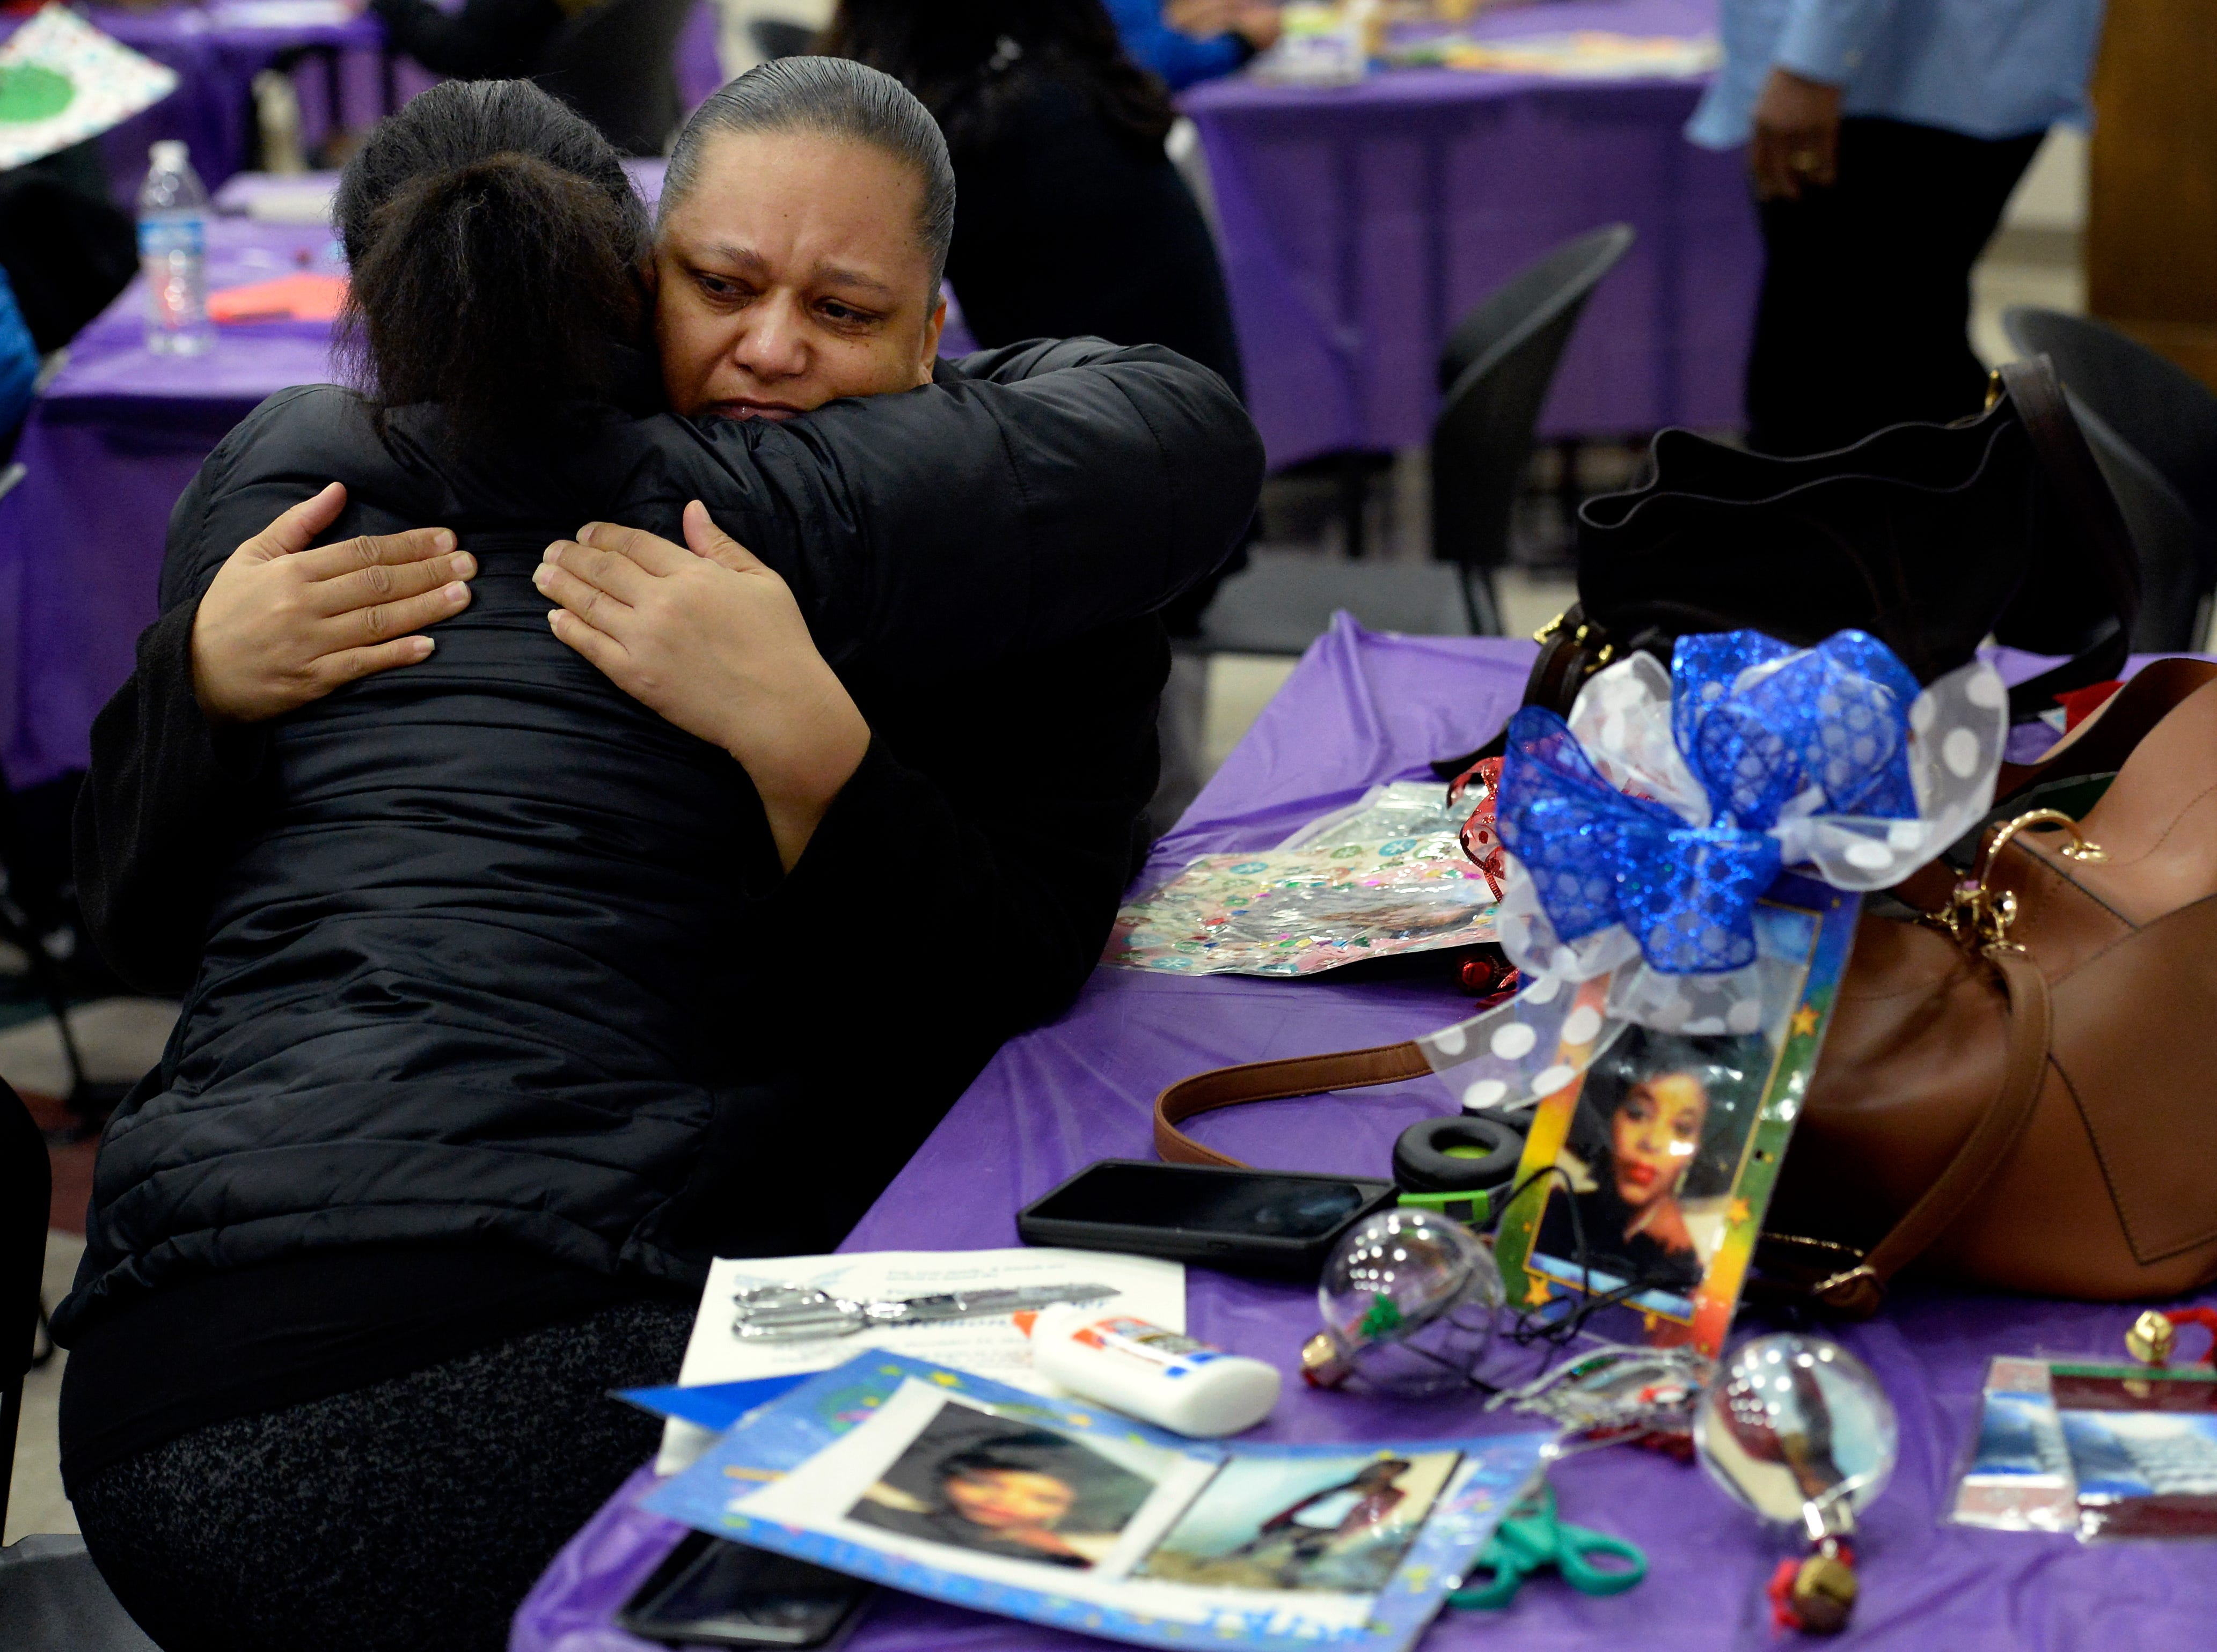 Quiana Hendricks is comforted by Tanesha White while making a Christmas ornament in memory of her son, William Ervin, at the Metro Police Department's North Precinct on Tuesday, Dec. 11, 2018, in Nashville, Tenn. The Victim Intervention Program is a community outreach program through the police department.